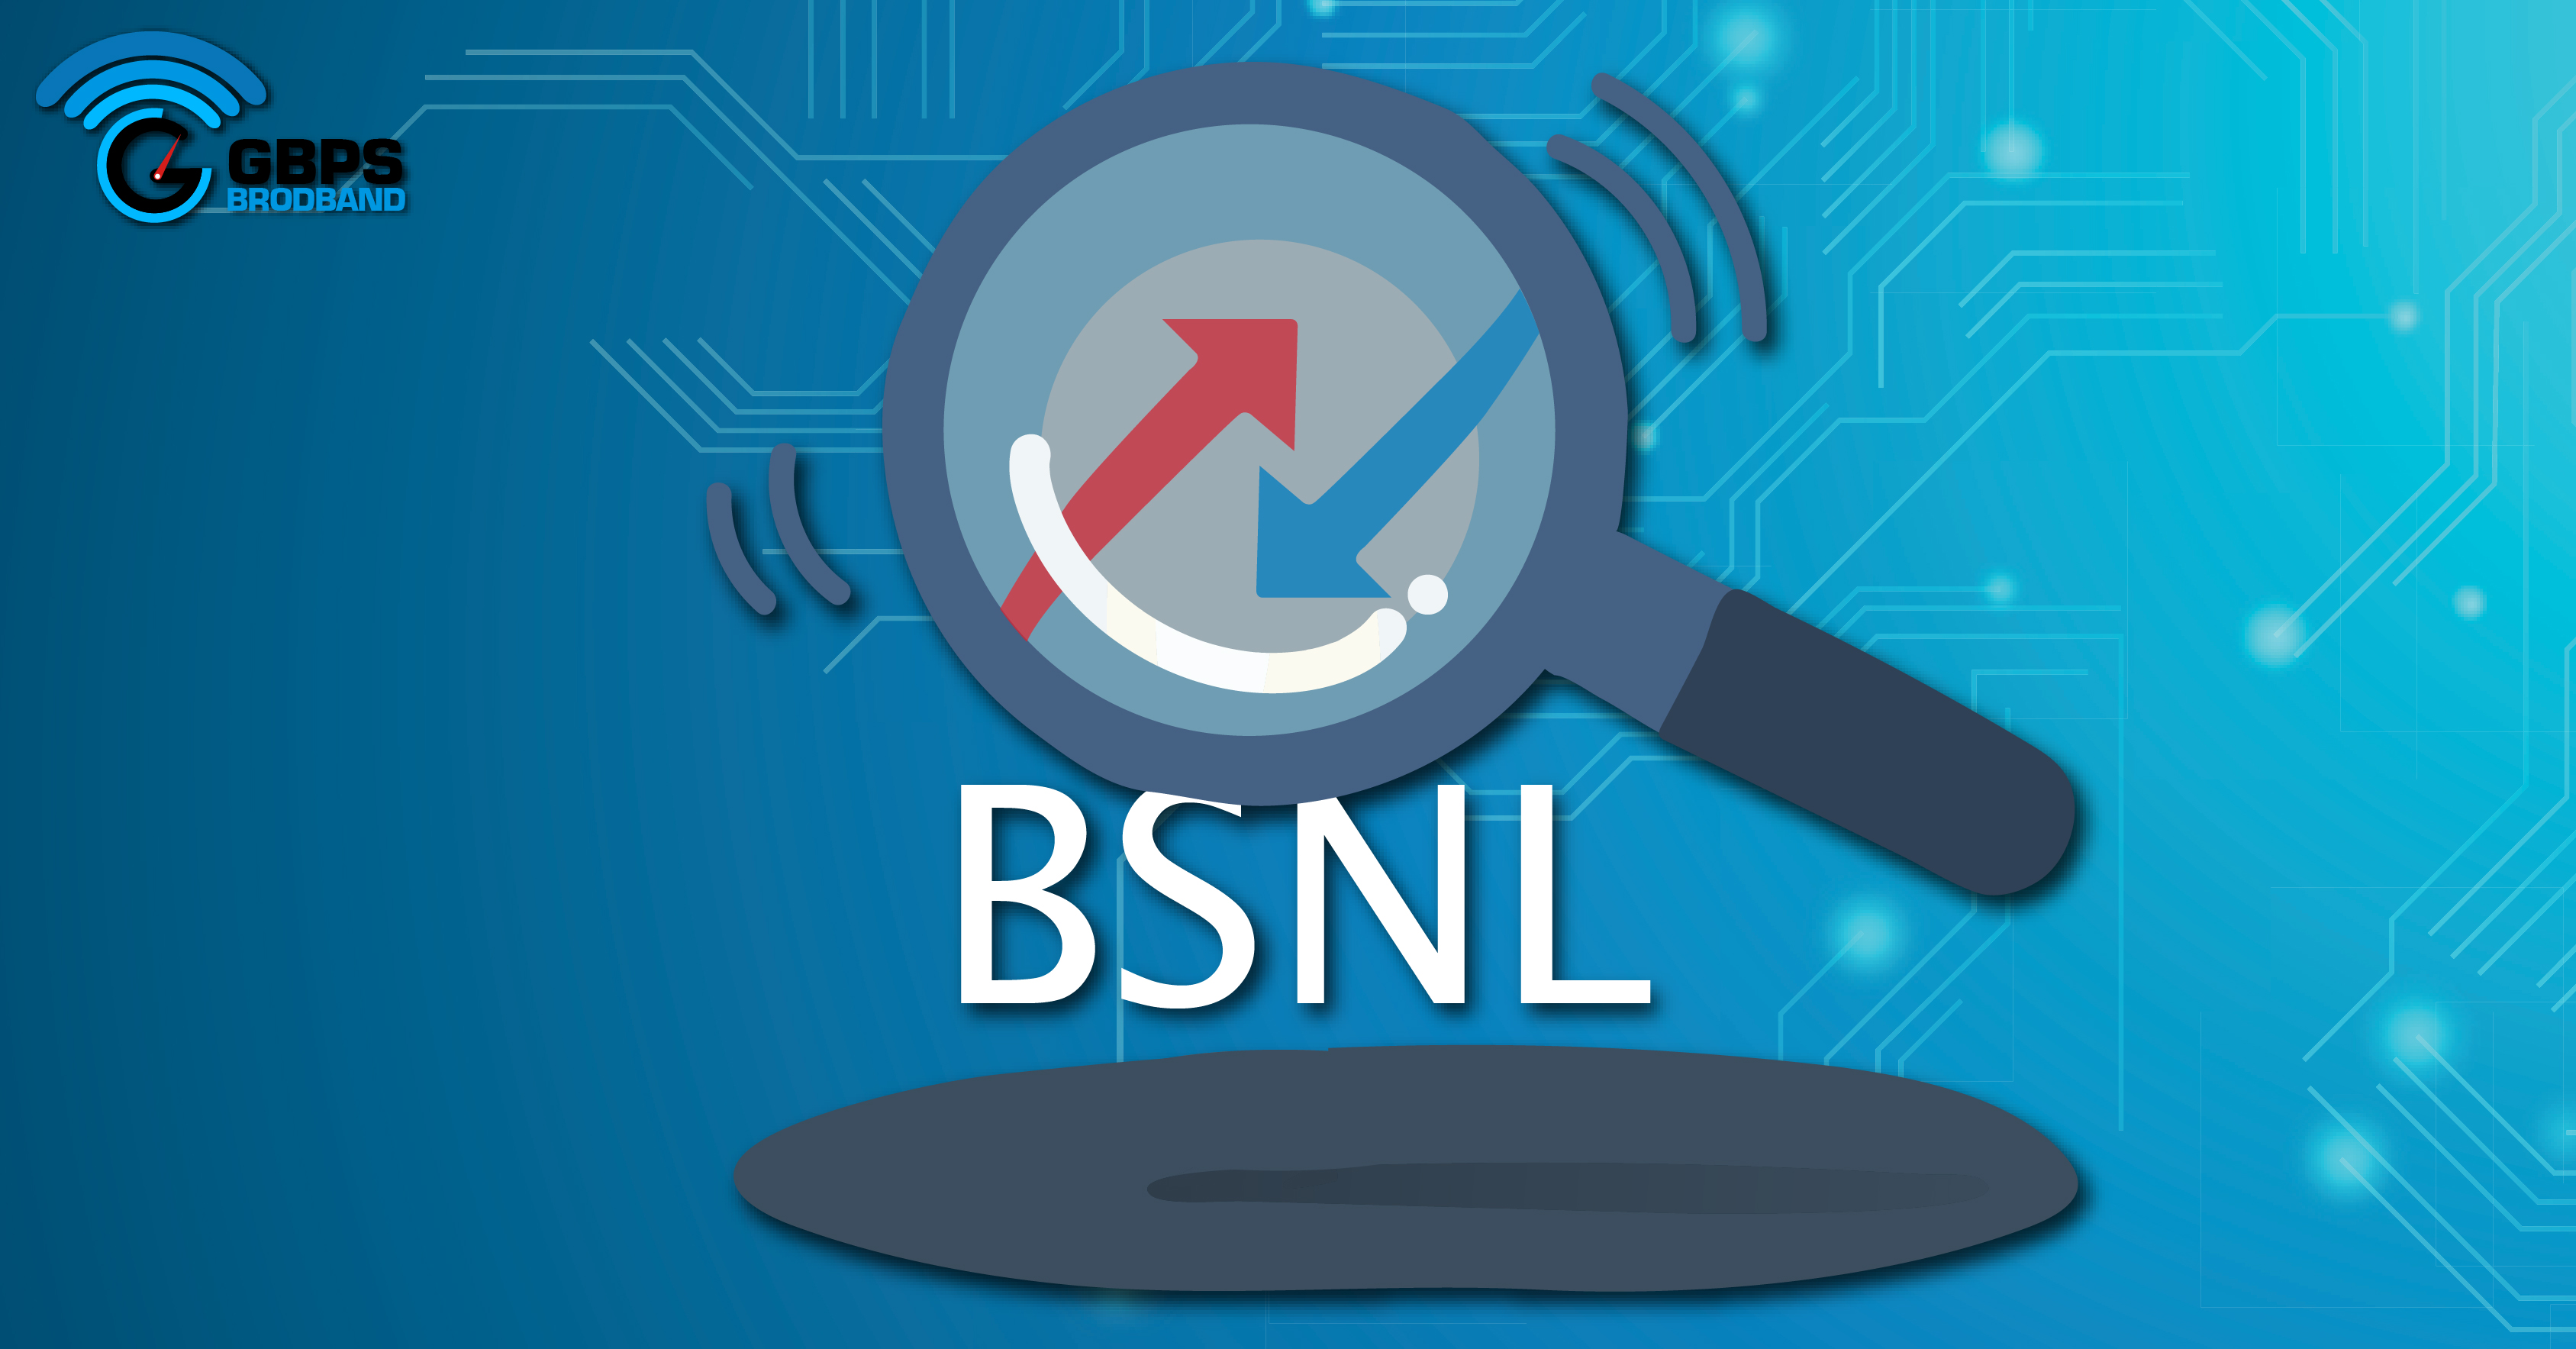 BSNL BroadBand review